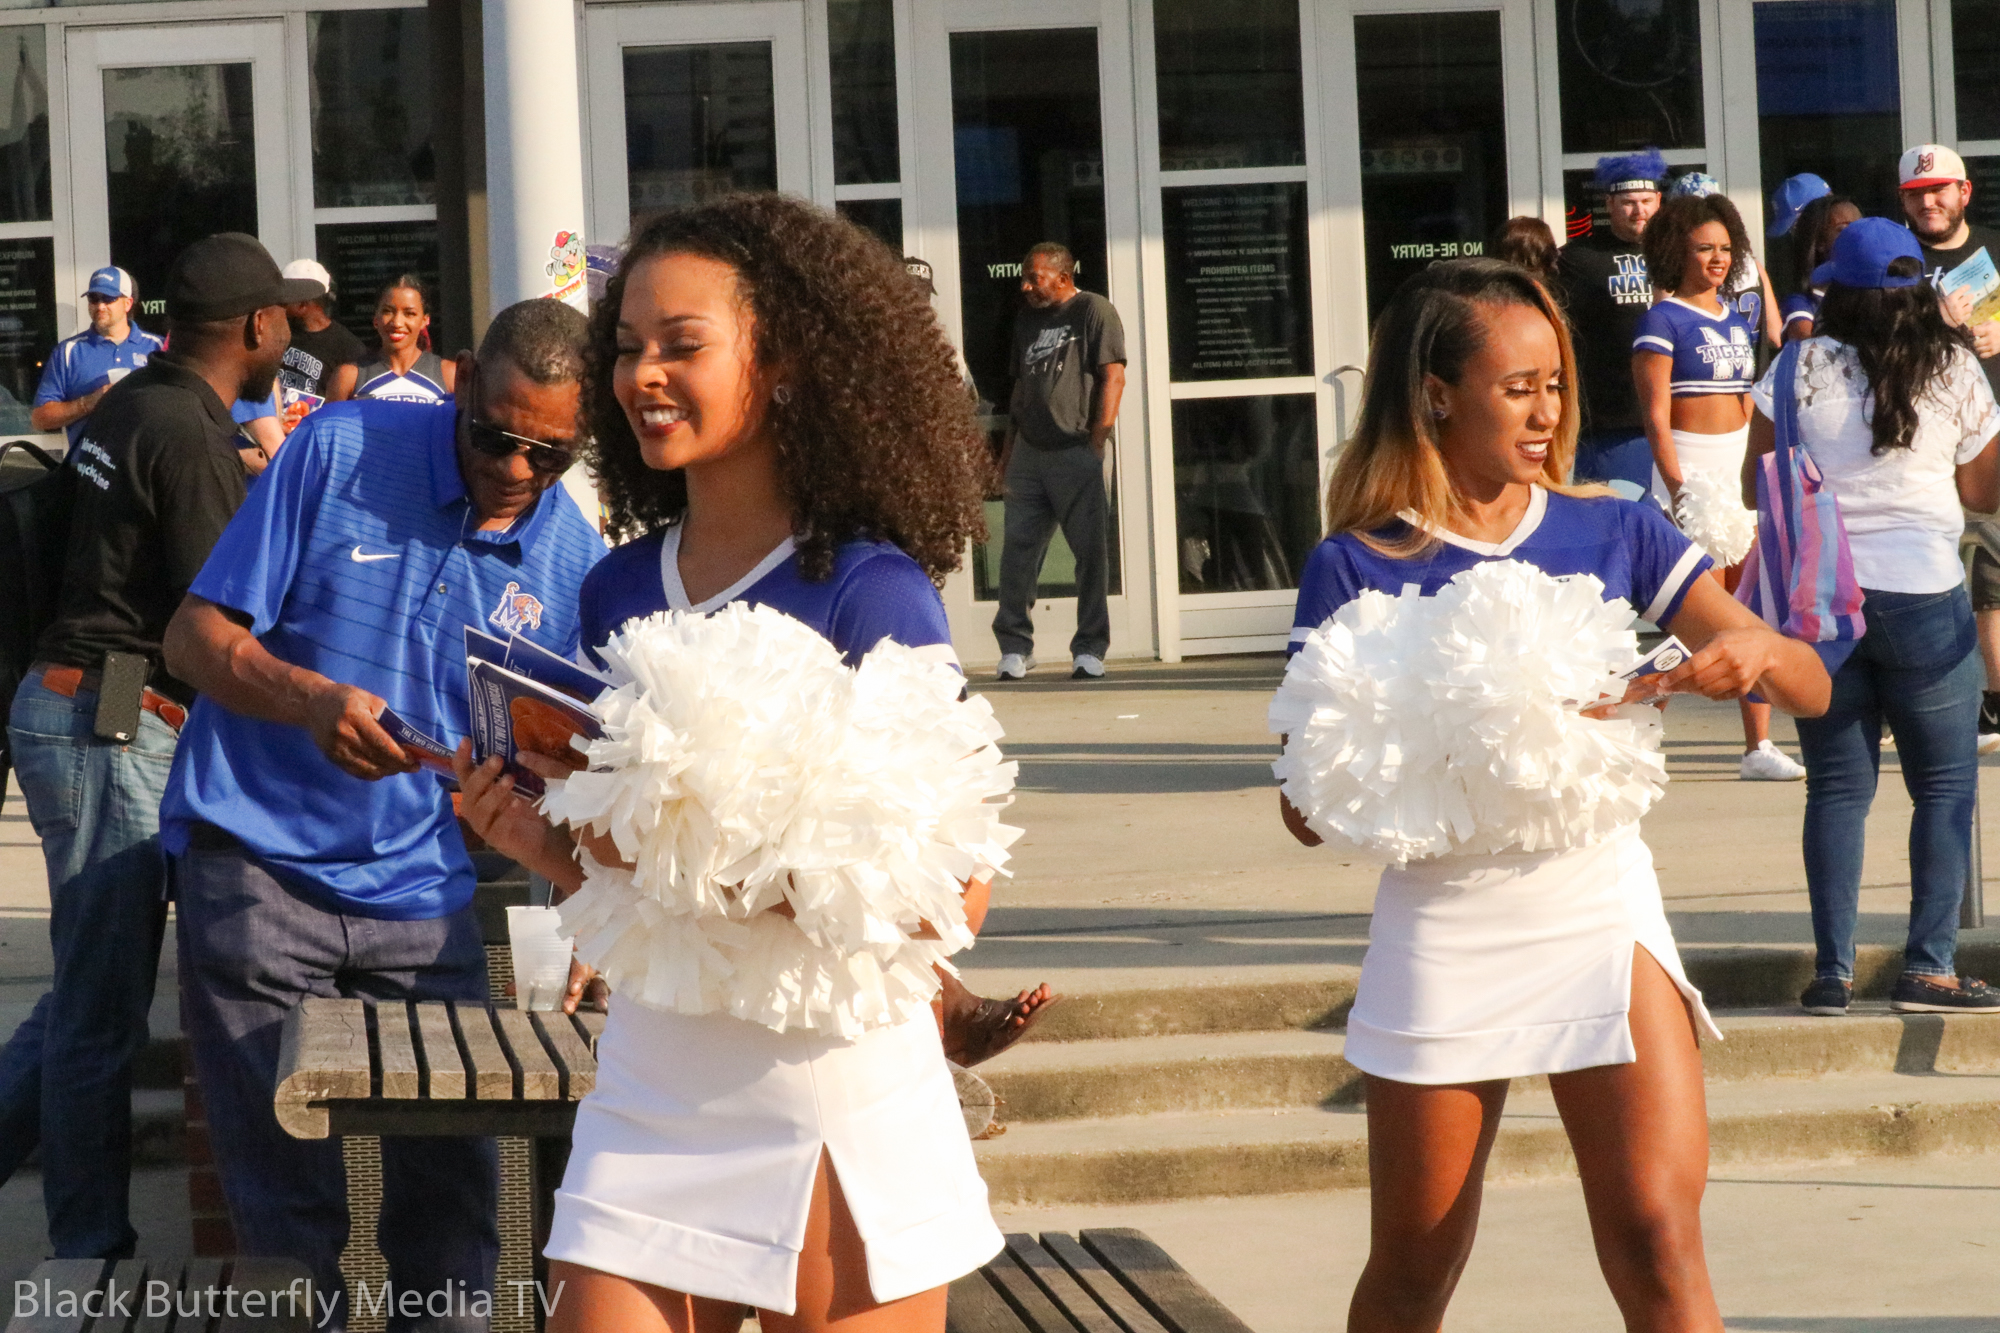 U of M Cheer Squad handing out flyers.